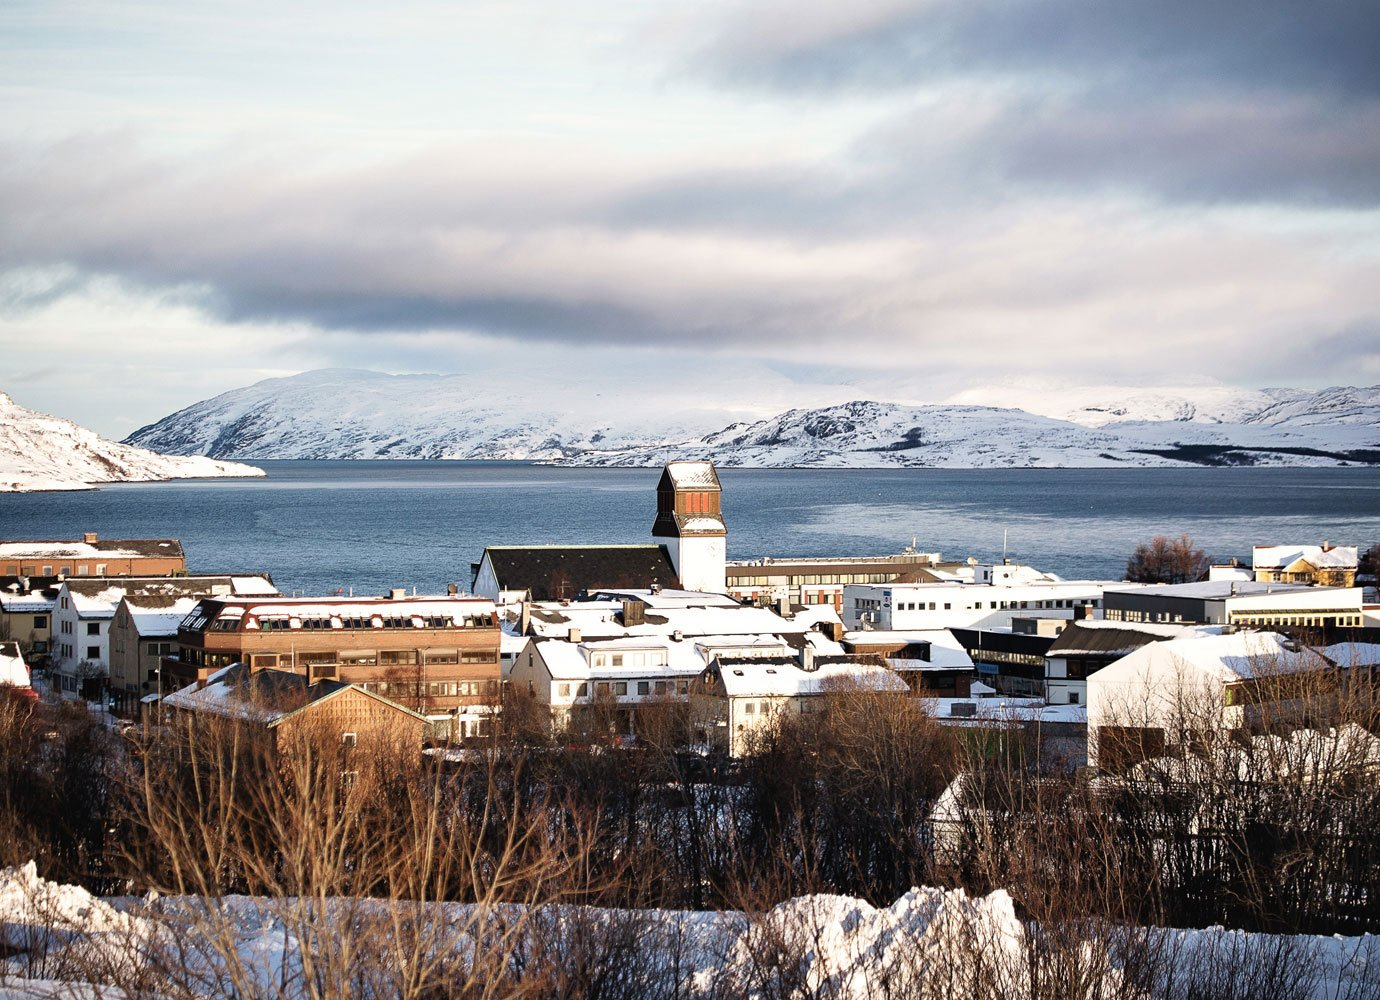 Letter from Boris Gleb: Owen Hatherley uncovers the peculiar history of a Soviet enclave in Norway